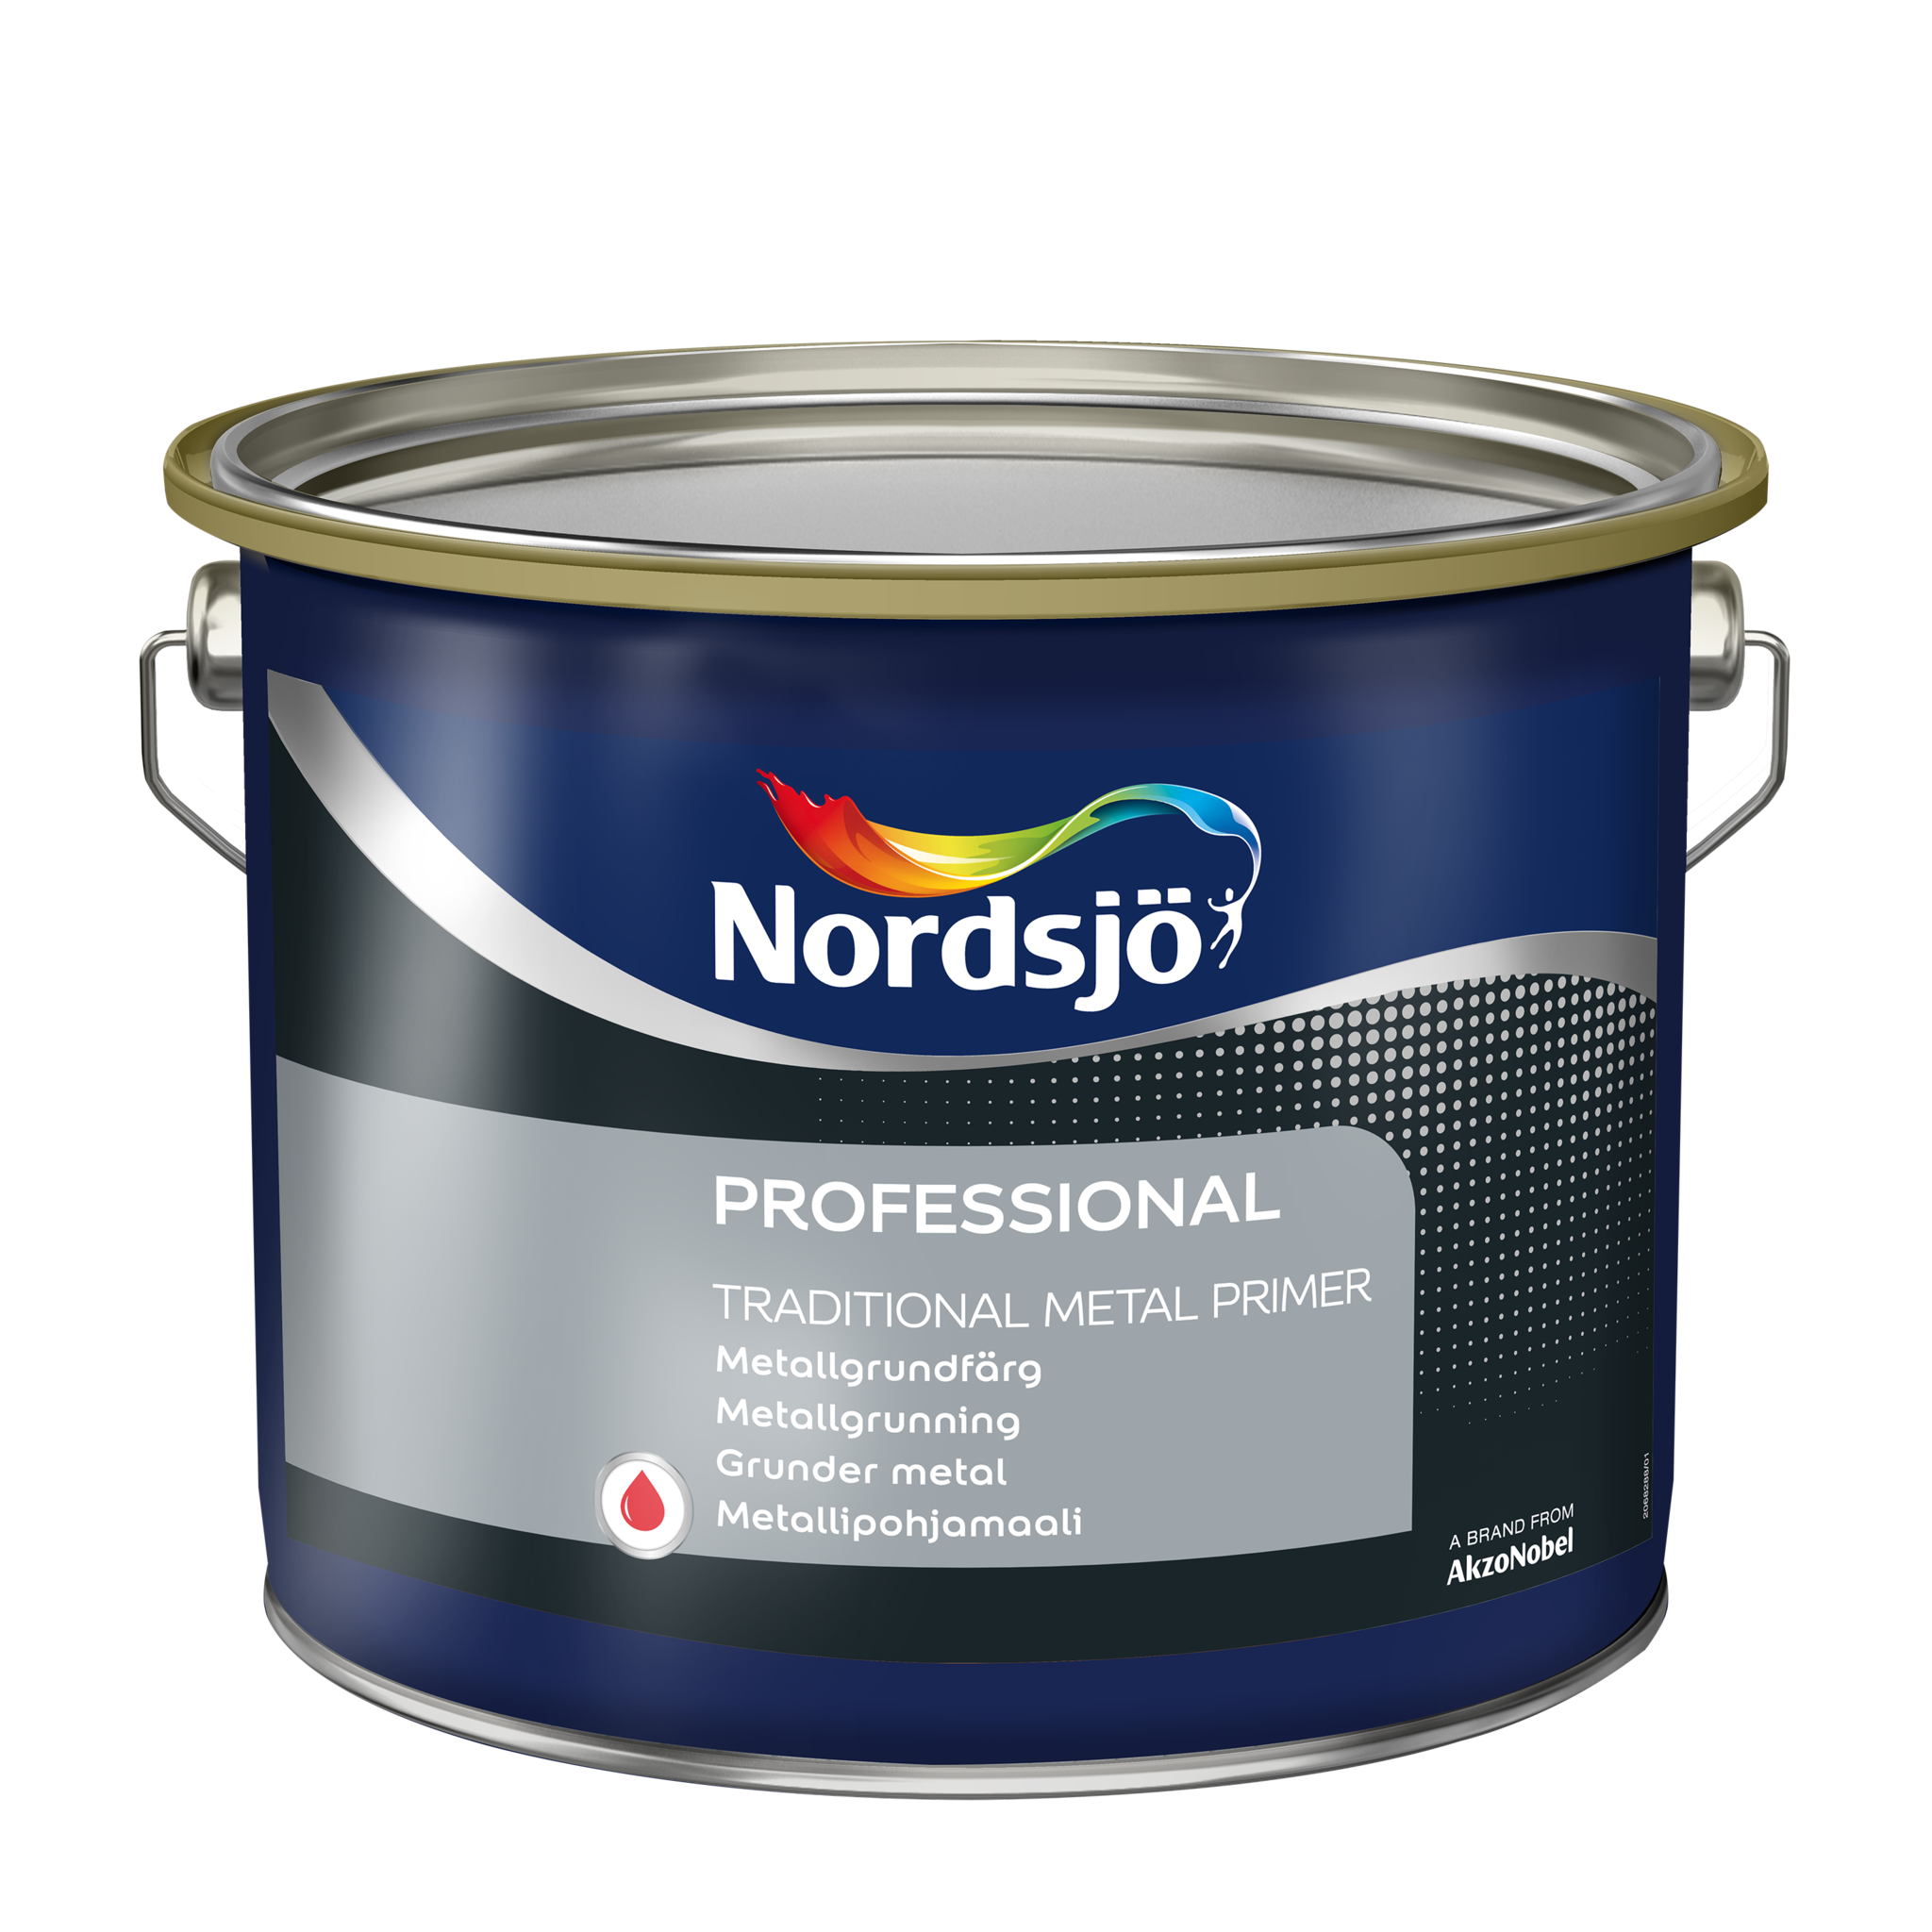 Nordsjö Professional Traditional Metal Primer